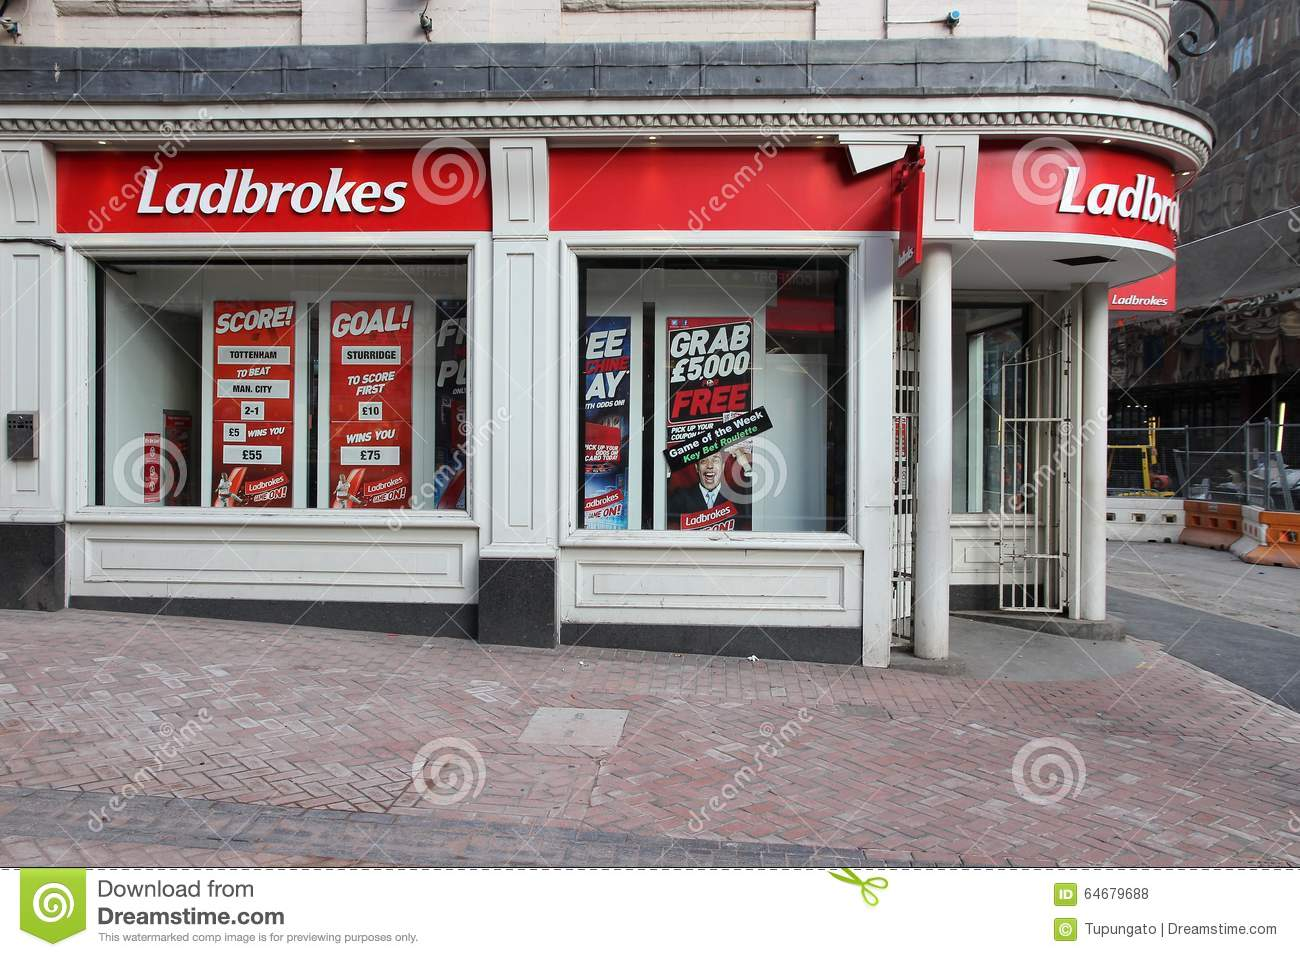 Ladbrokes sports betting editorial stock photo  Image of